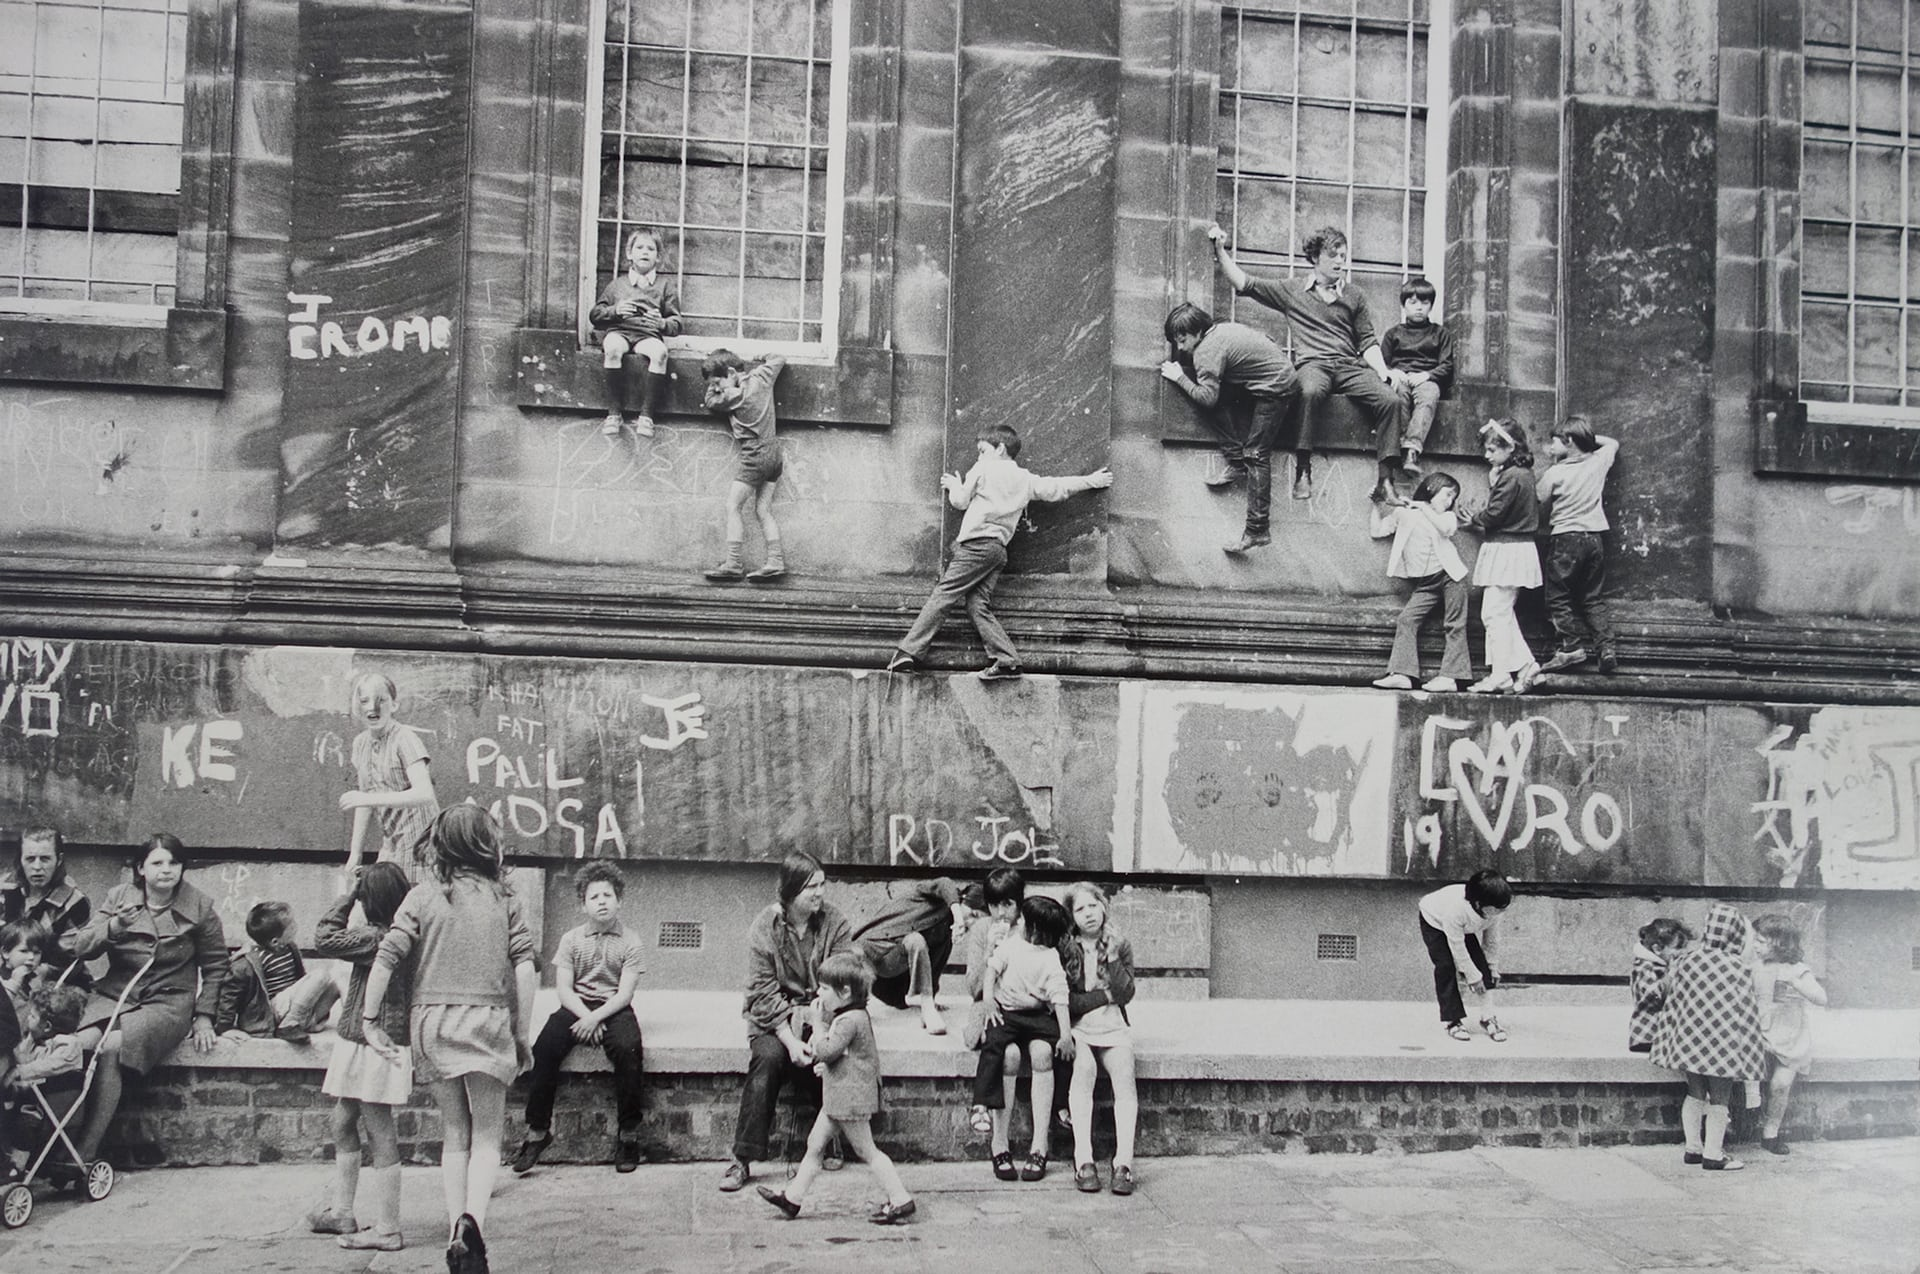 Outside the Black-E Arts Centre, Liverpool, 1973